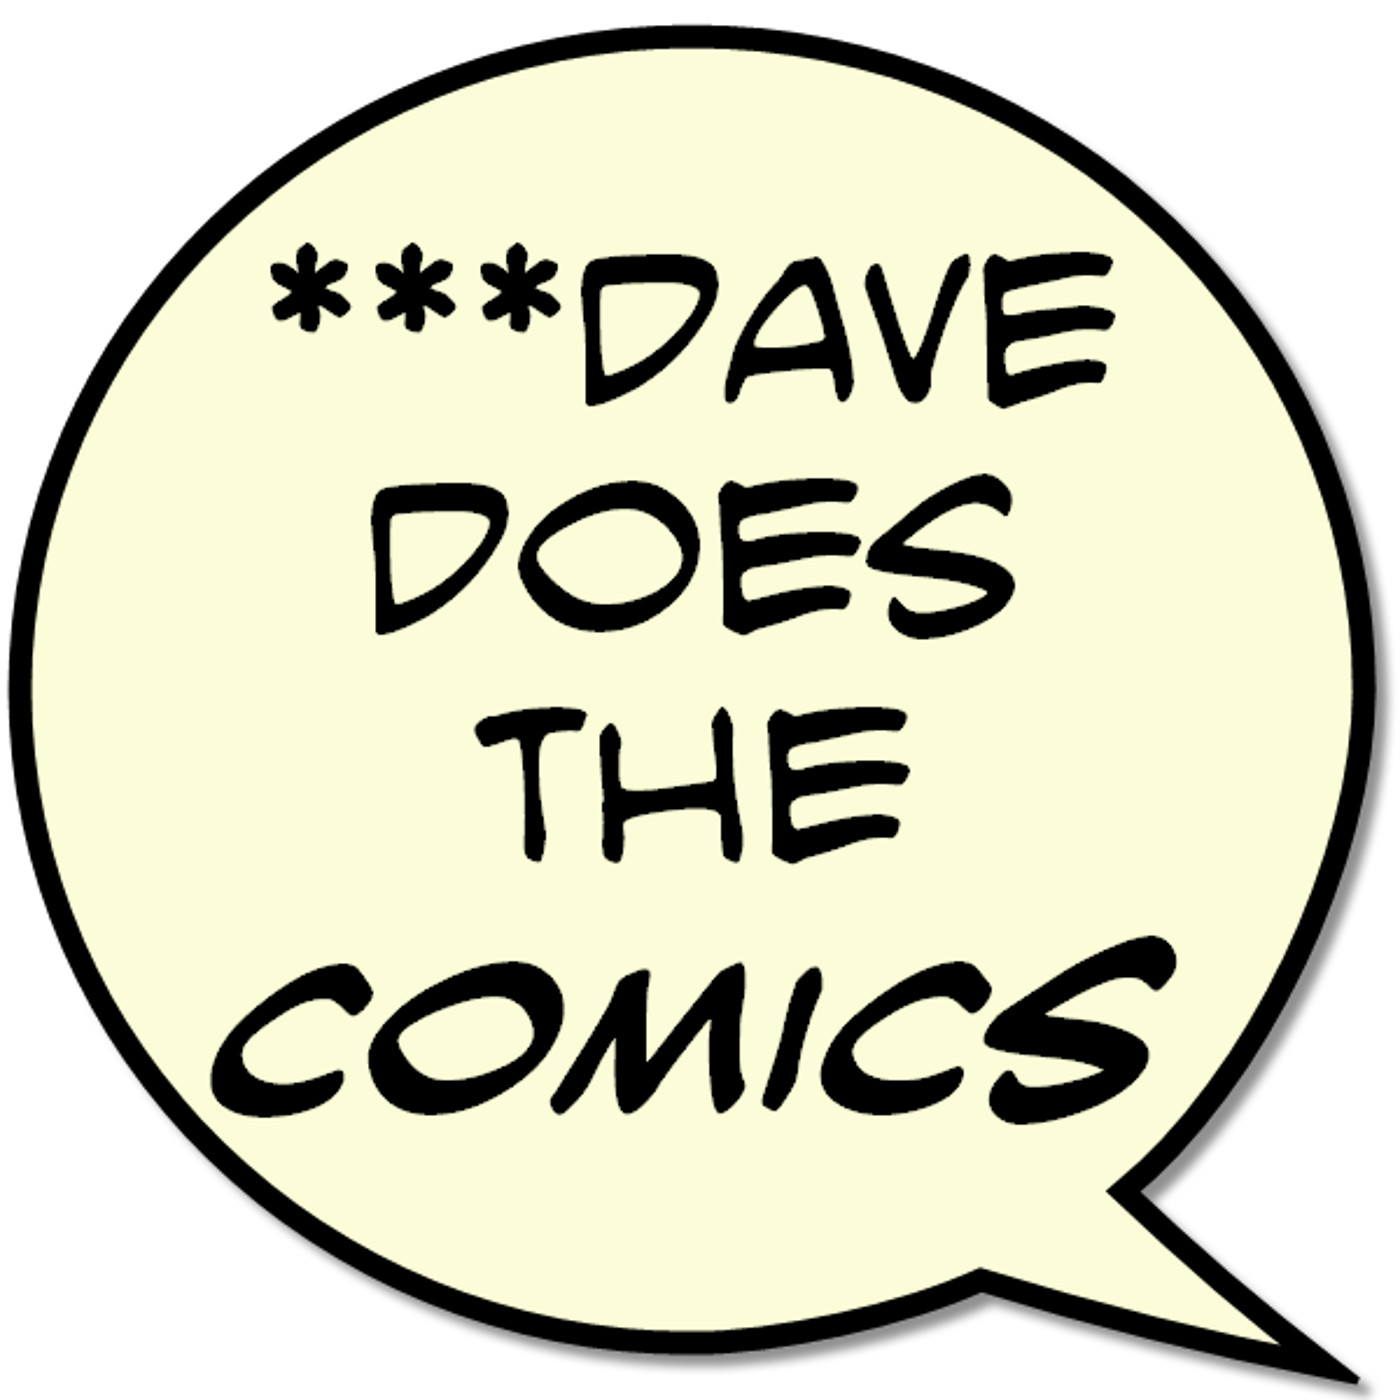 ***Dave Does the Comics!